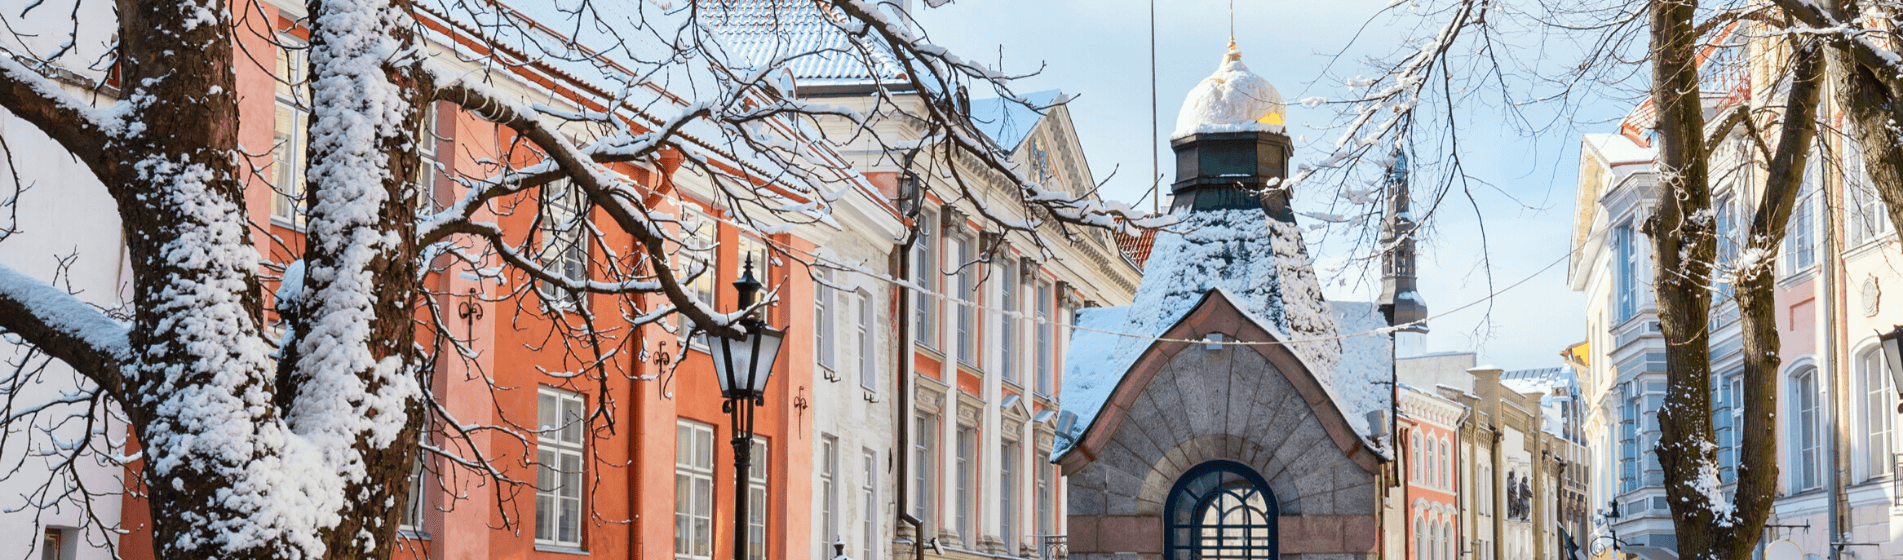 Economic freedom in Estonia: greater than in the United States